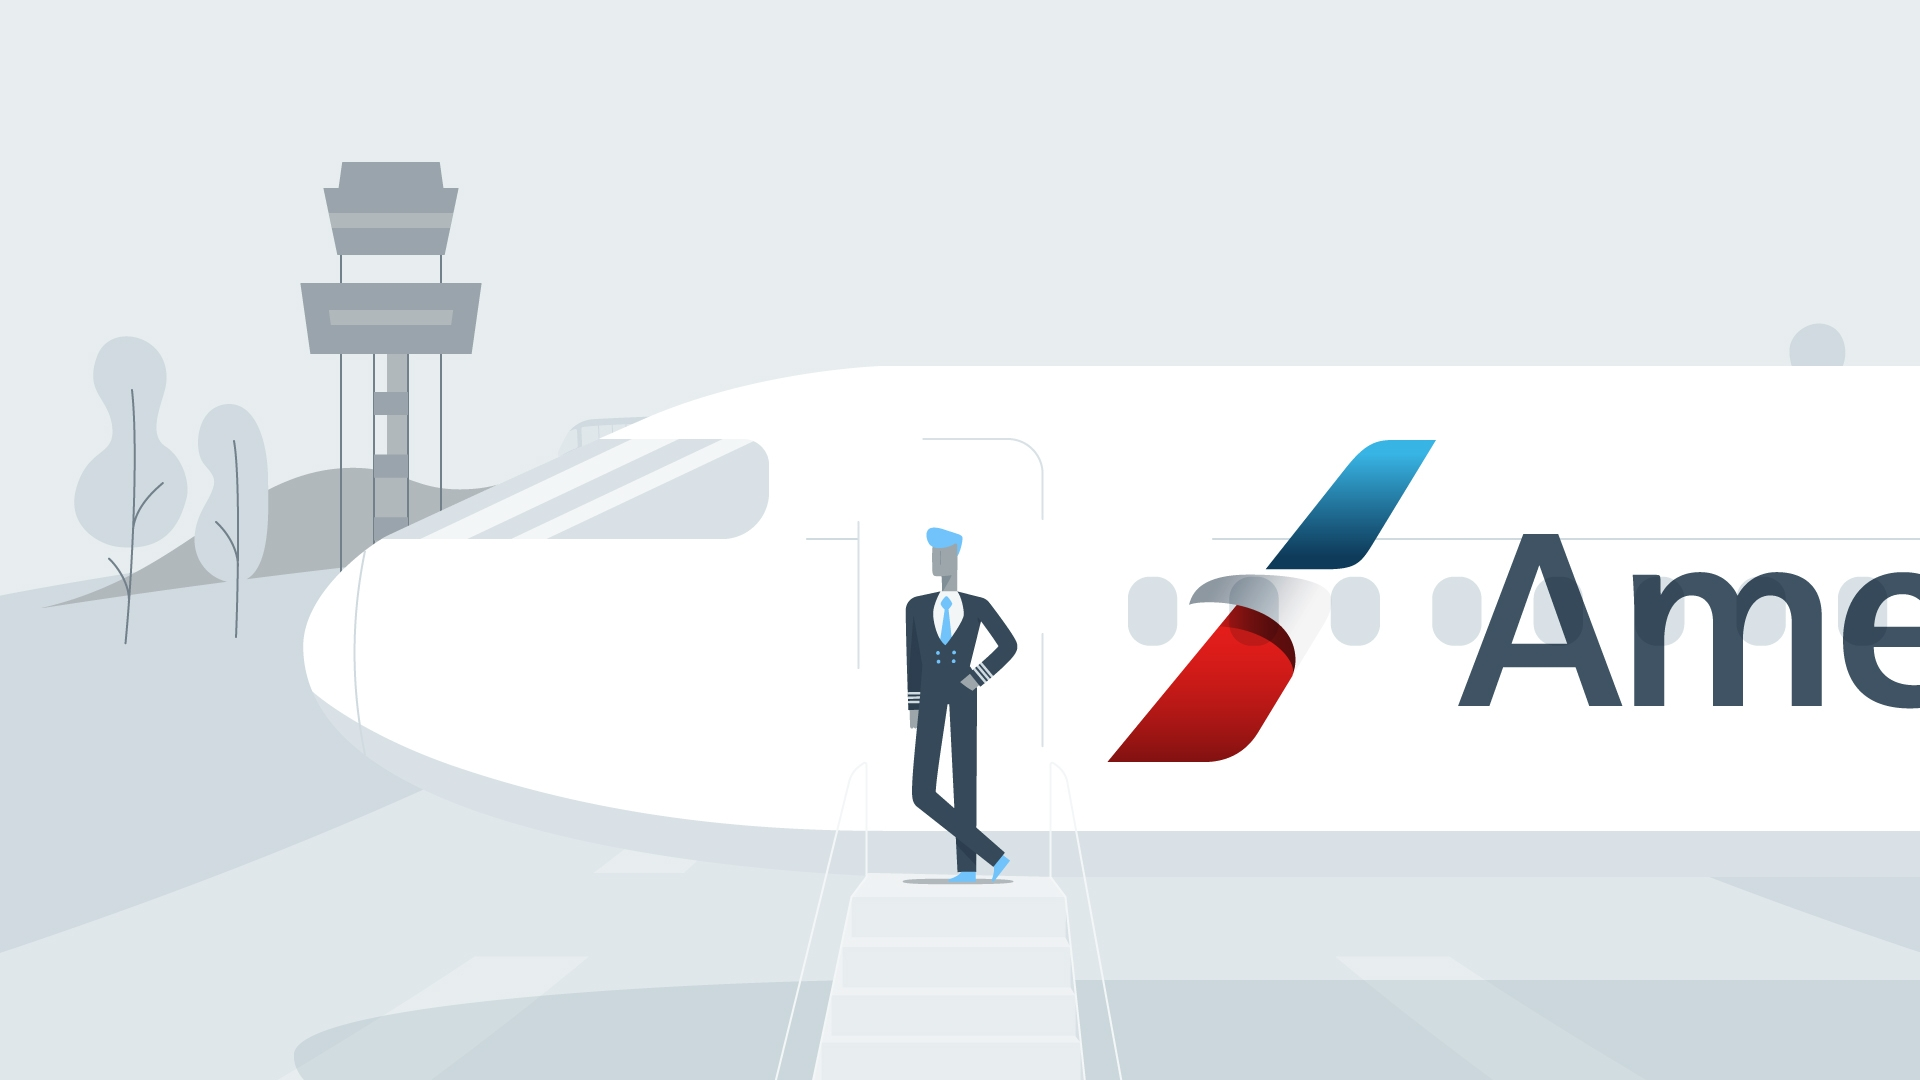 American Airlines: Cadet Academy Hero Image of Pilot Character with Plane.